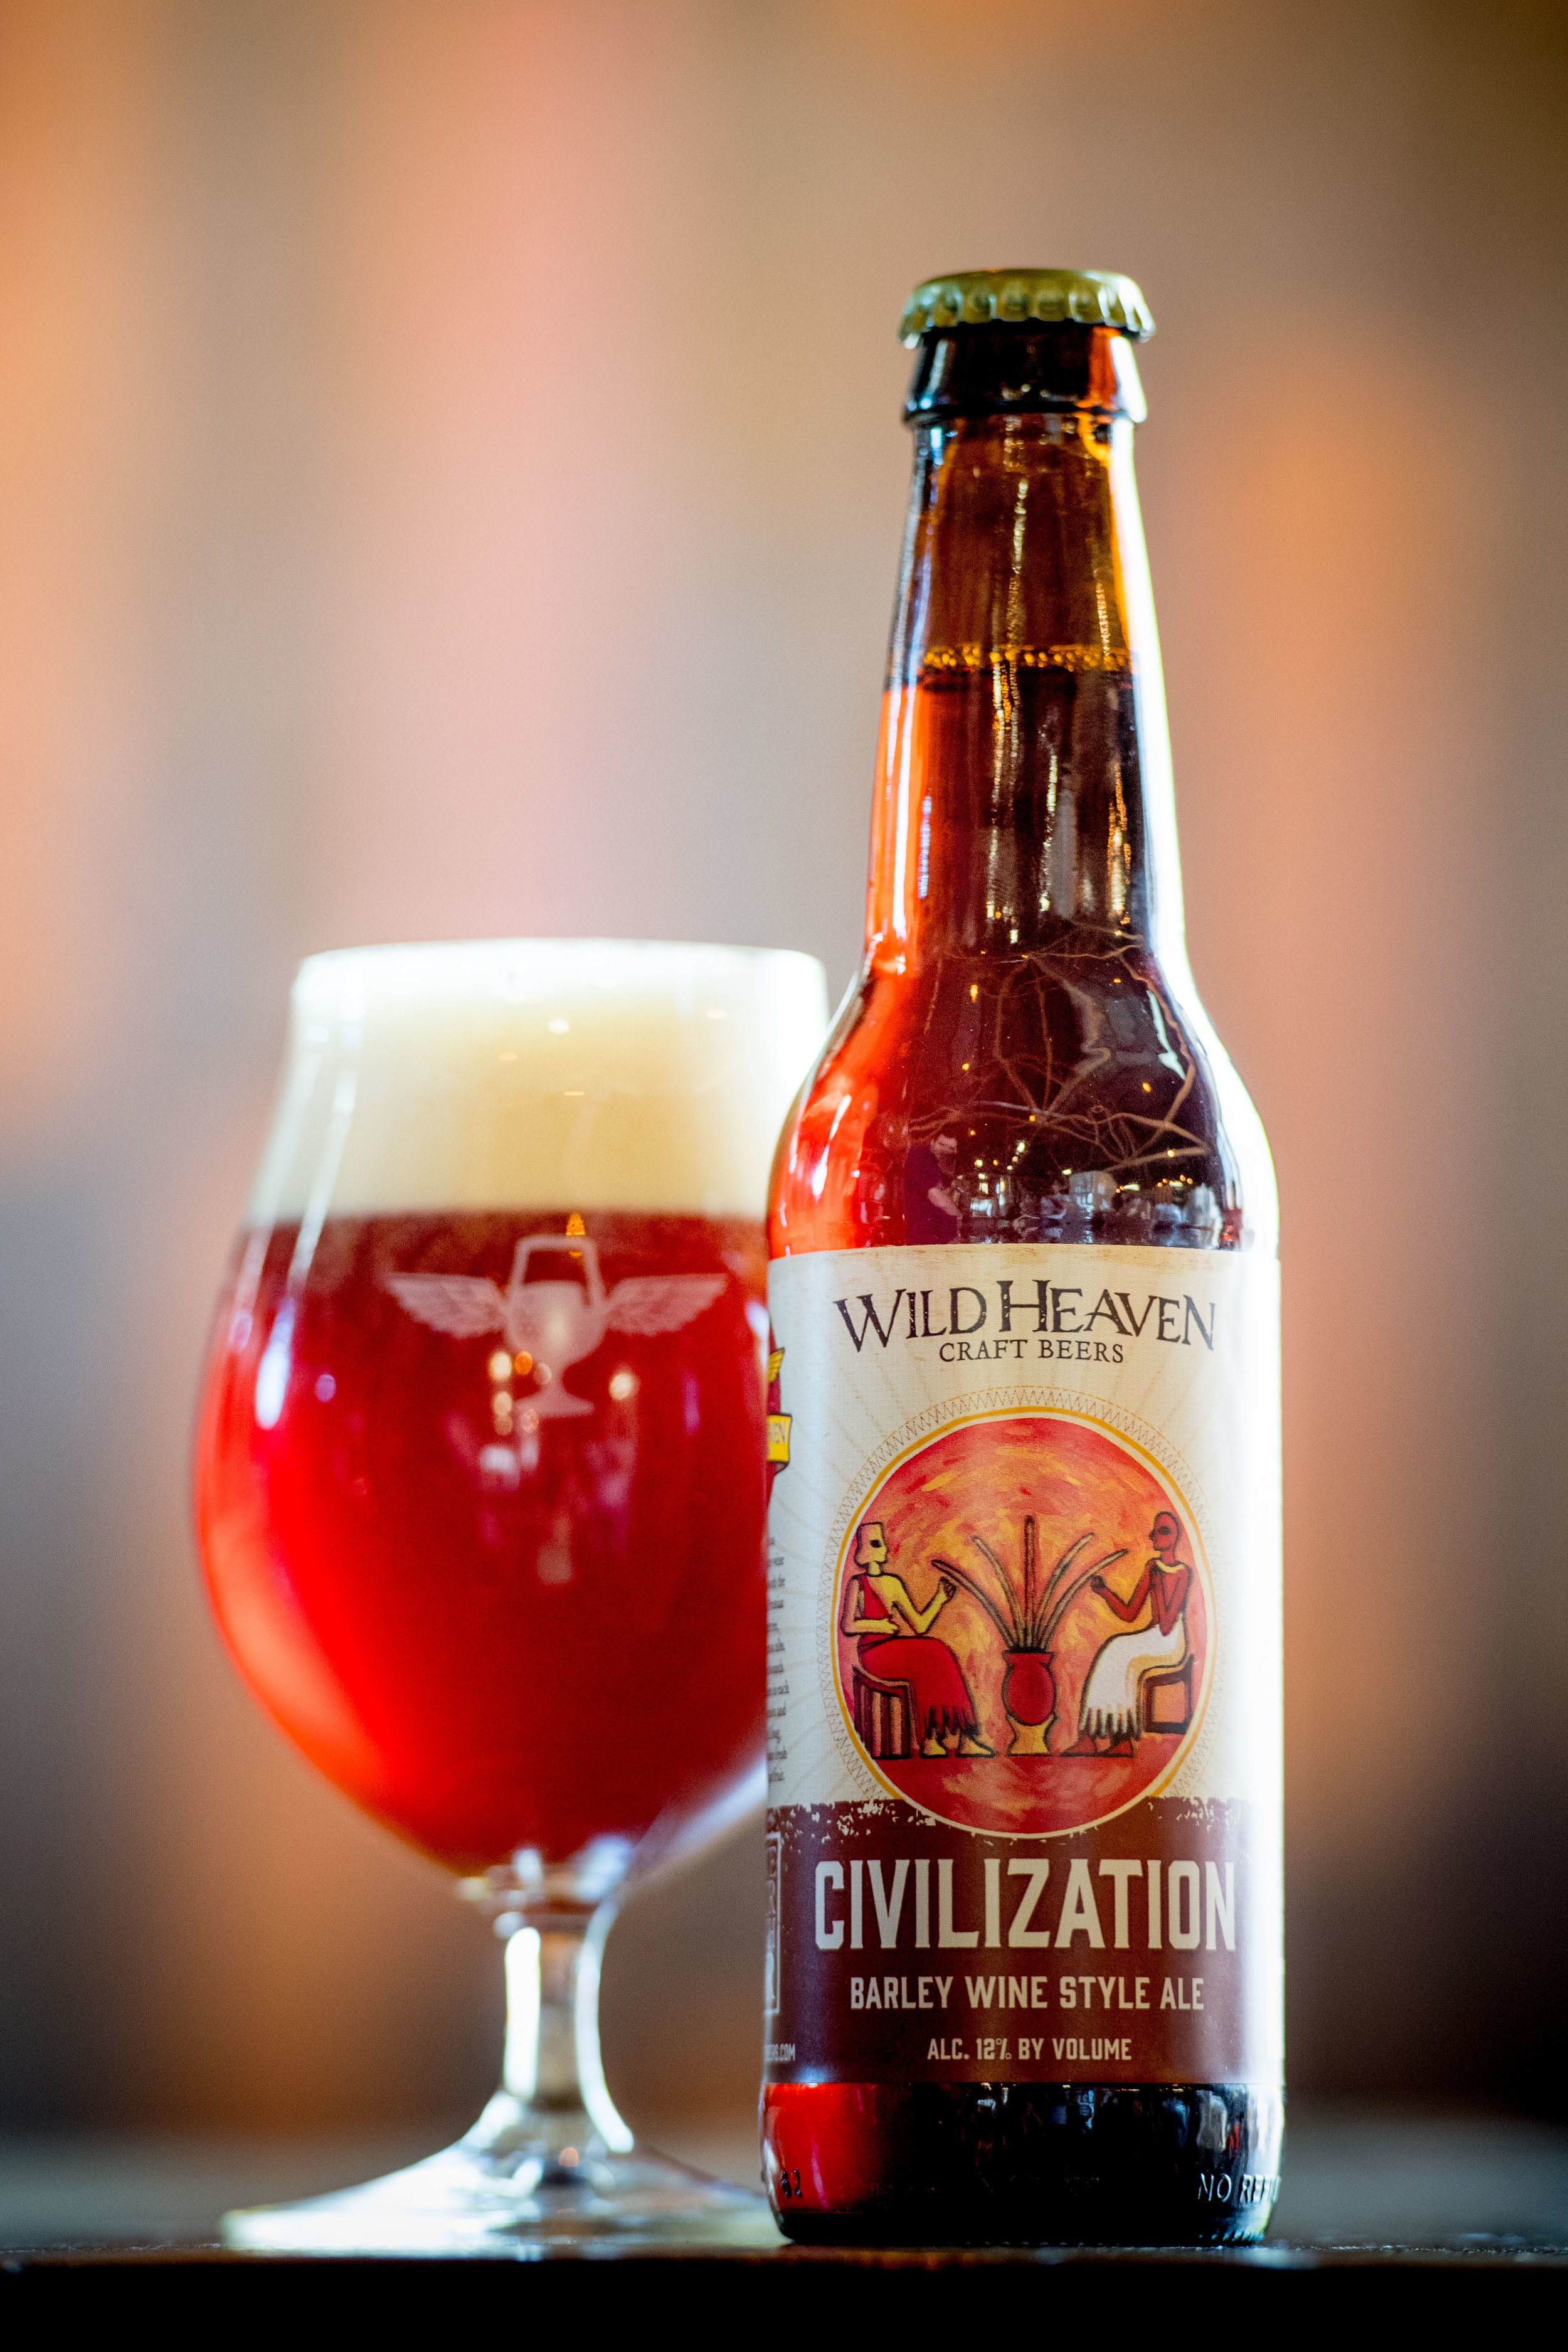 Civilization - English-style Barley Wine Ale12% ABV | 50 IBUCivilization is an English-style barley wine made resplendent with the addition of dried Prussian lemons, tart cherries, cranberries and cocoa nibs. Dark fruit flavor abounds with roasted goodness in each sip with hints of melon and tropical aromas. A long, lingering finish evokes fresh bread and mellow pit fruit.Suggested food pairings: Game, dessert, chocolate, candied fruits.